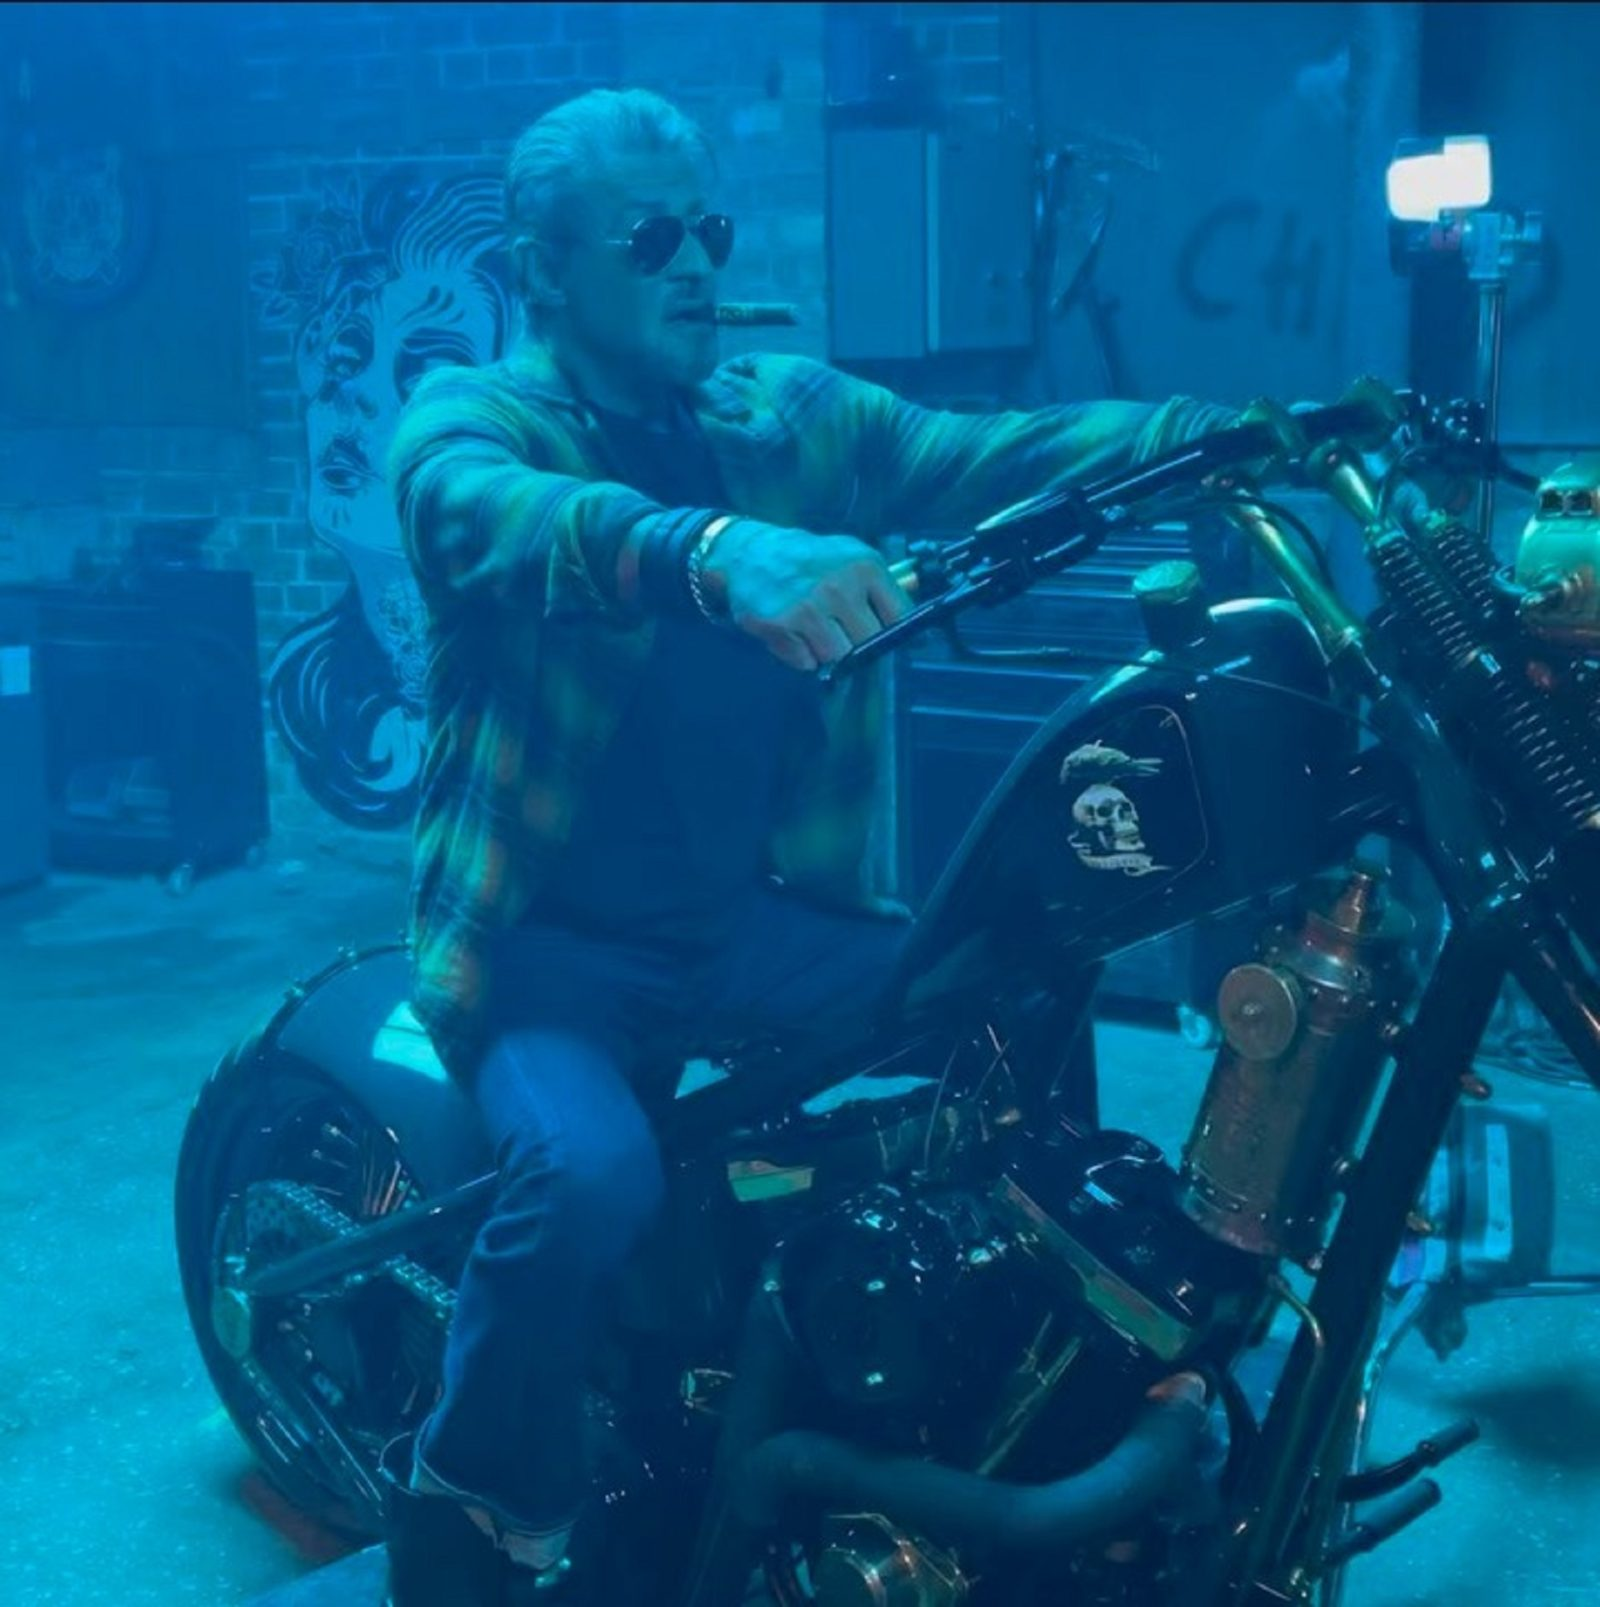 rugged-stallone-rides-a-bike-on-the-set-of-the-expendables,-fans'-excitement-grows